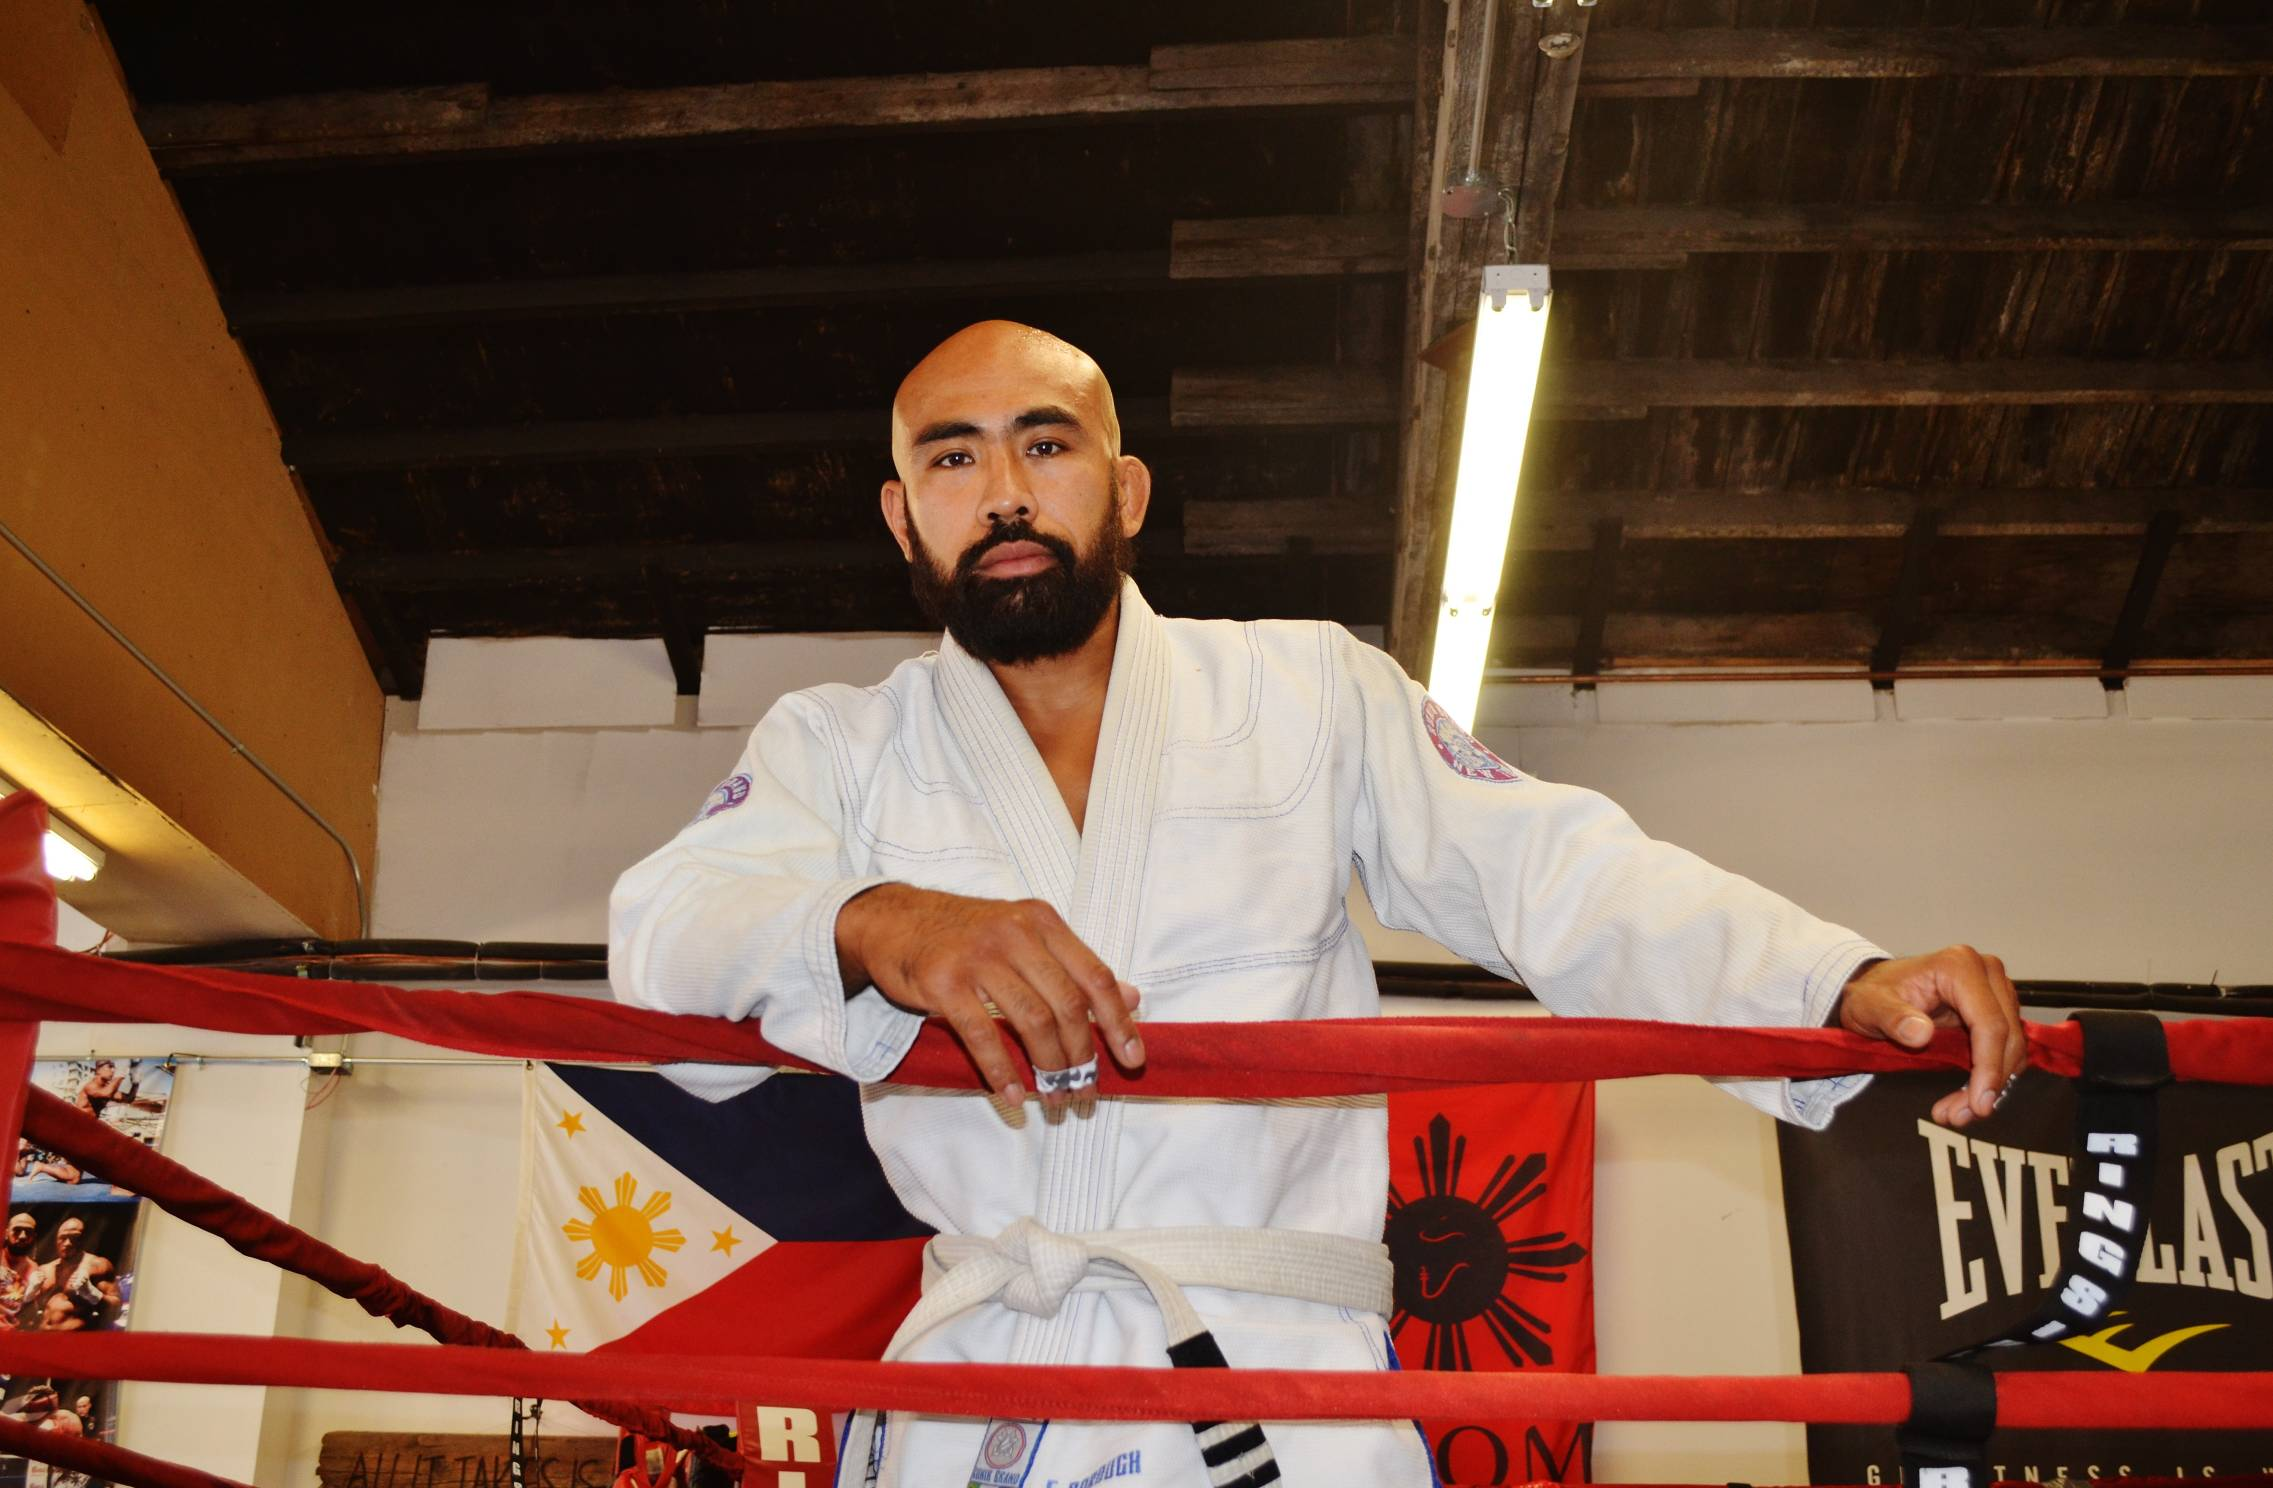 Fighting spirit: Rockaway gym owner, Chris Romulo